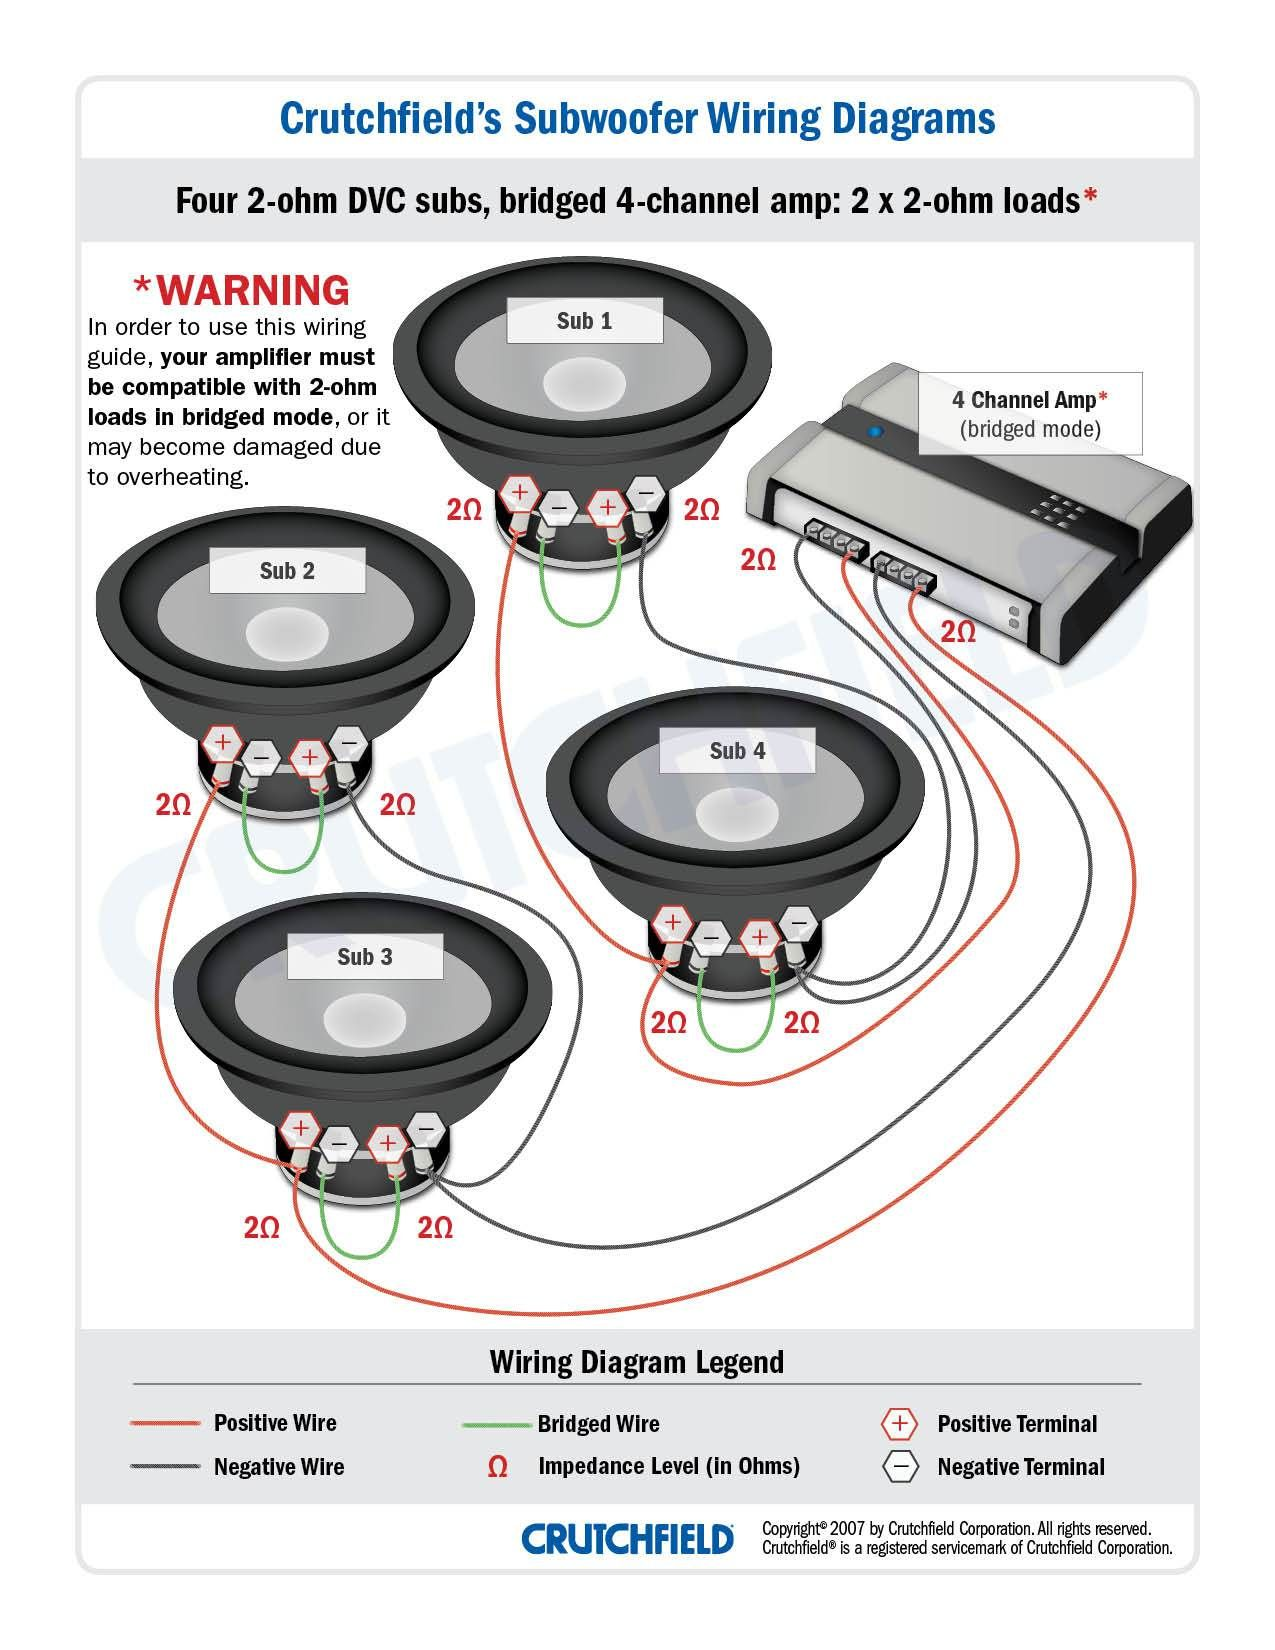 Outstanding Subwoofer Dual Voice Coil Wiring Basic Electronics Wiring Diagram Wiring Cloud Picalendutblikvittorg